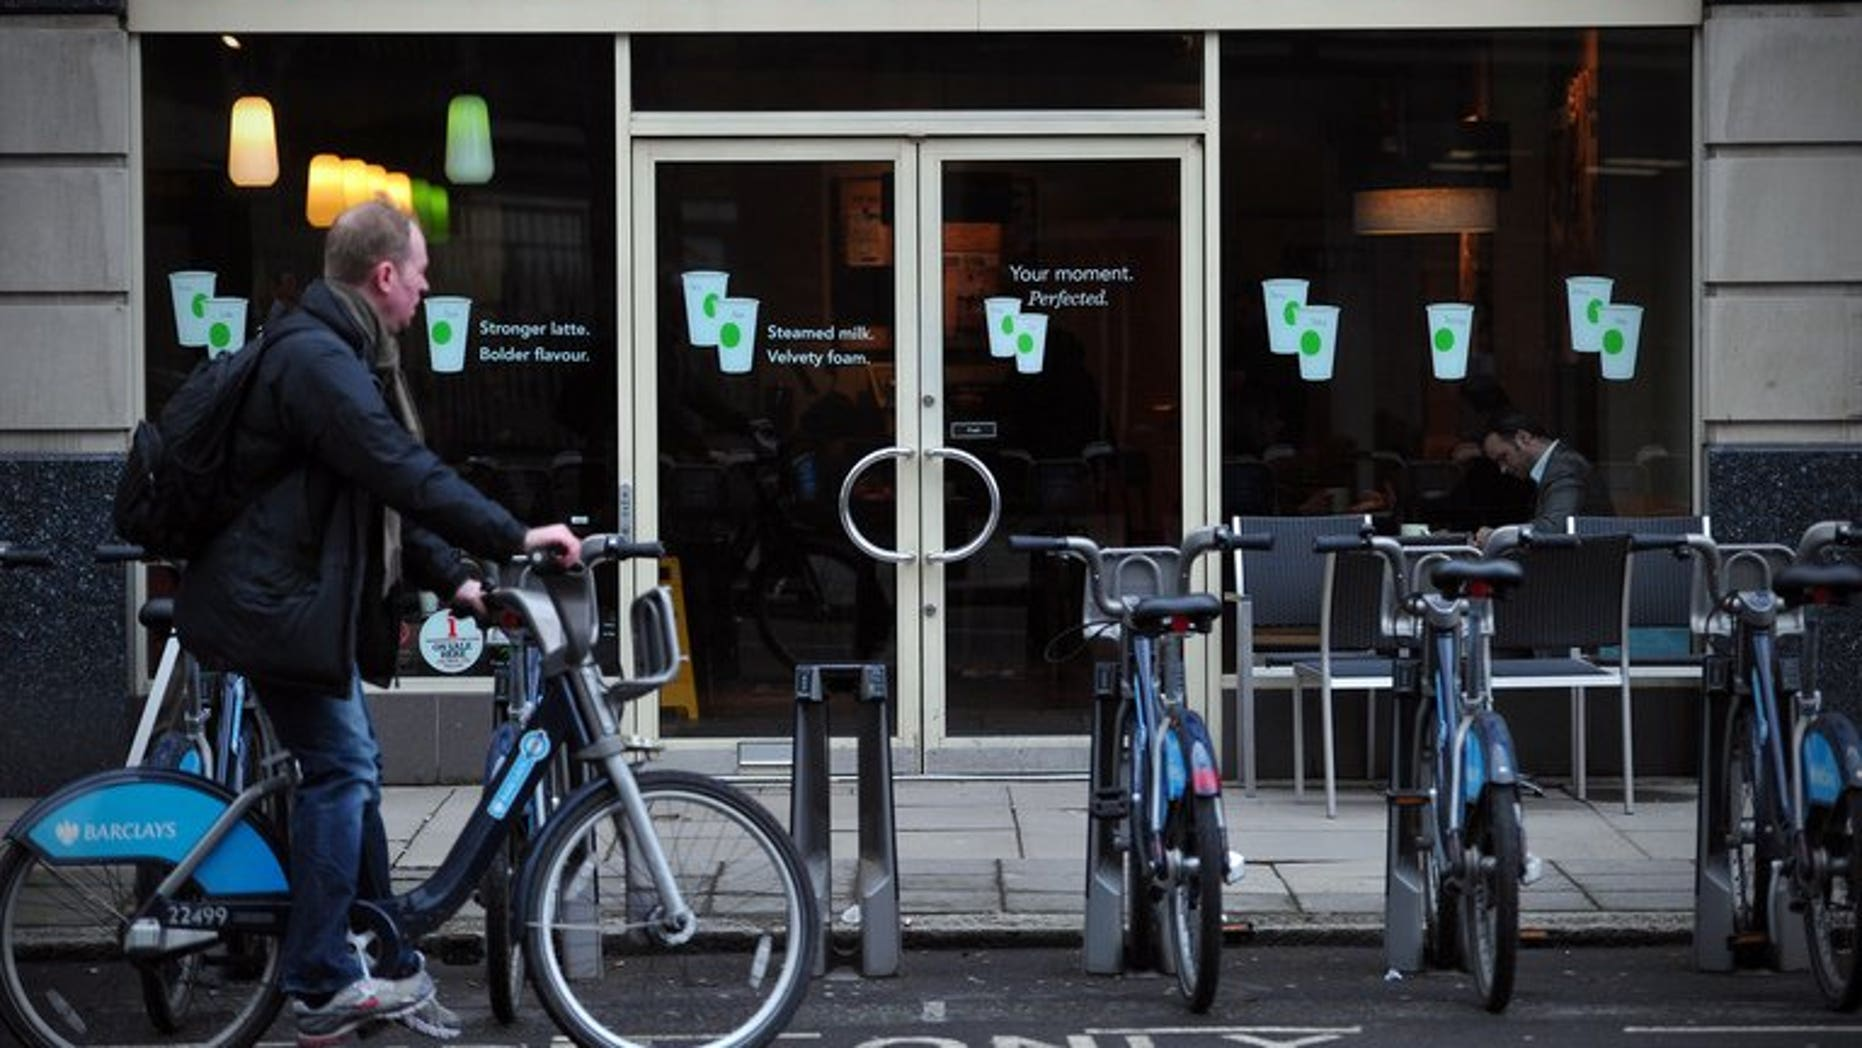 A man parks his hire bicycle outside a branch of Starbucks in central London on February 1, 2013. The US-based coffee giant has said it had paid ??5 million in British corporation tax and will pay another ??15 million by next year after facing a backlash from lawmakers and customers over non-payment.